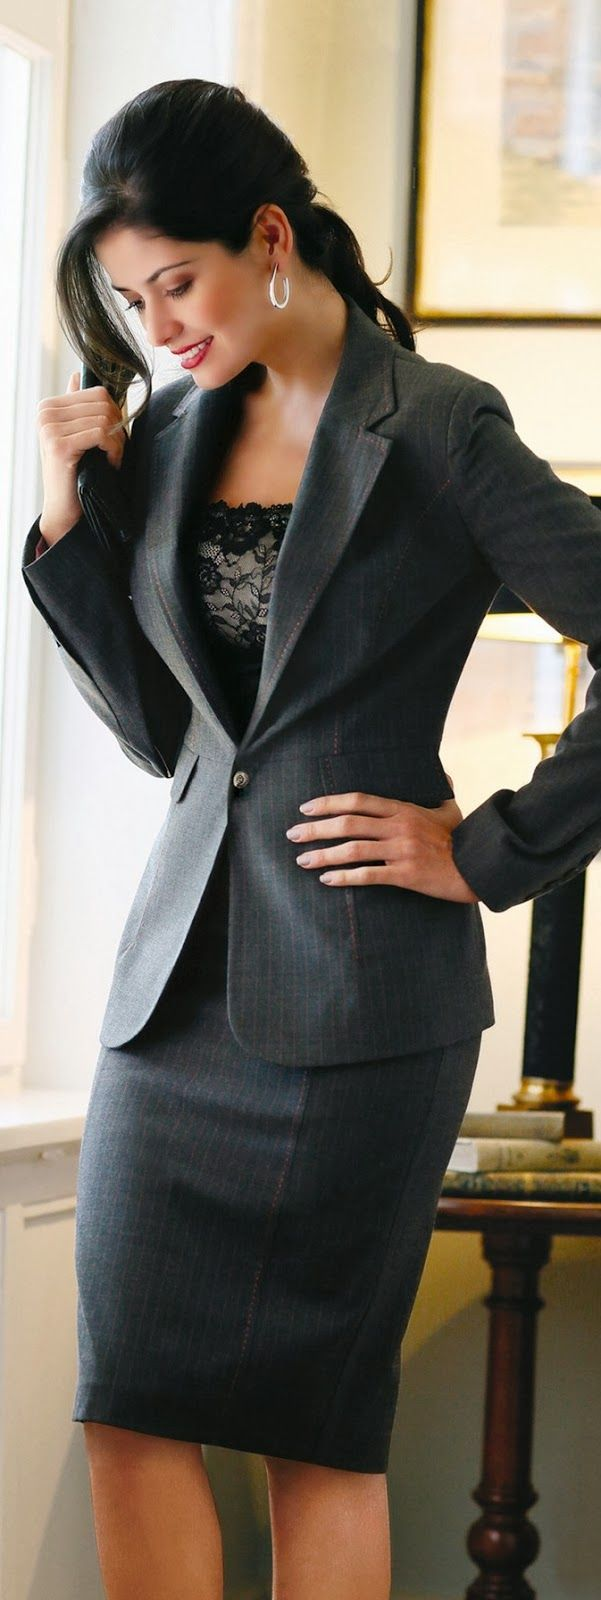 Business Professional Attire for Women: Smoldering Lace  So elegant but professional